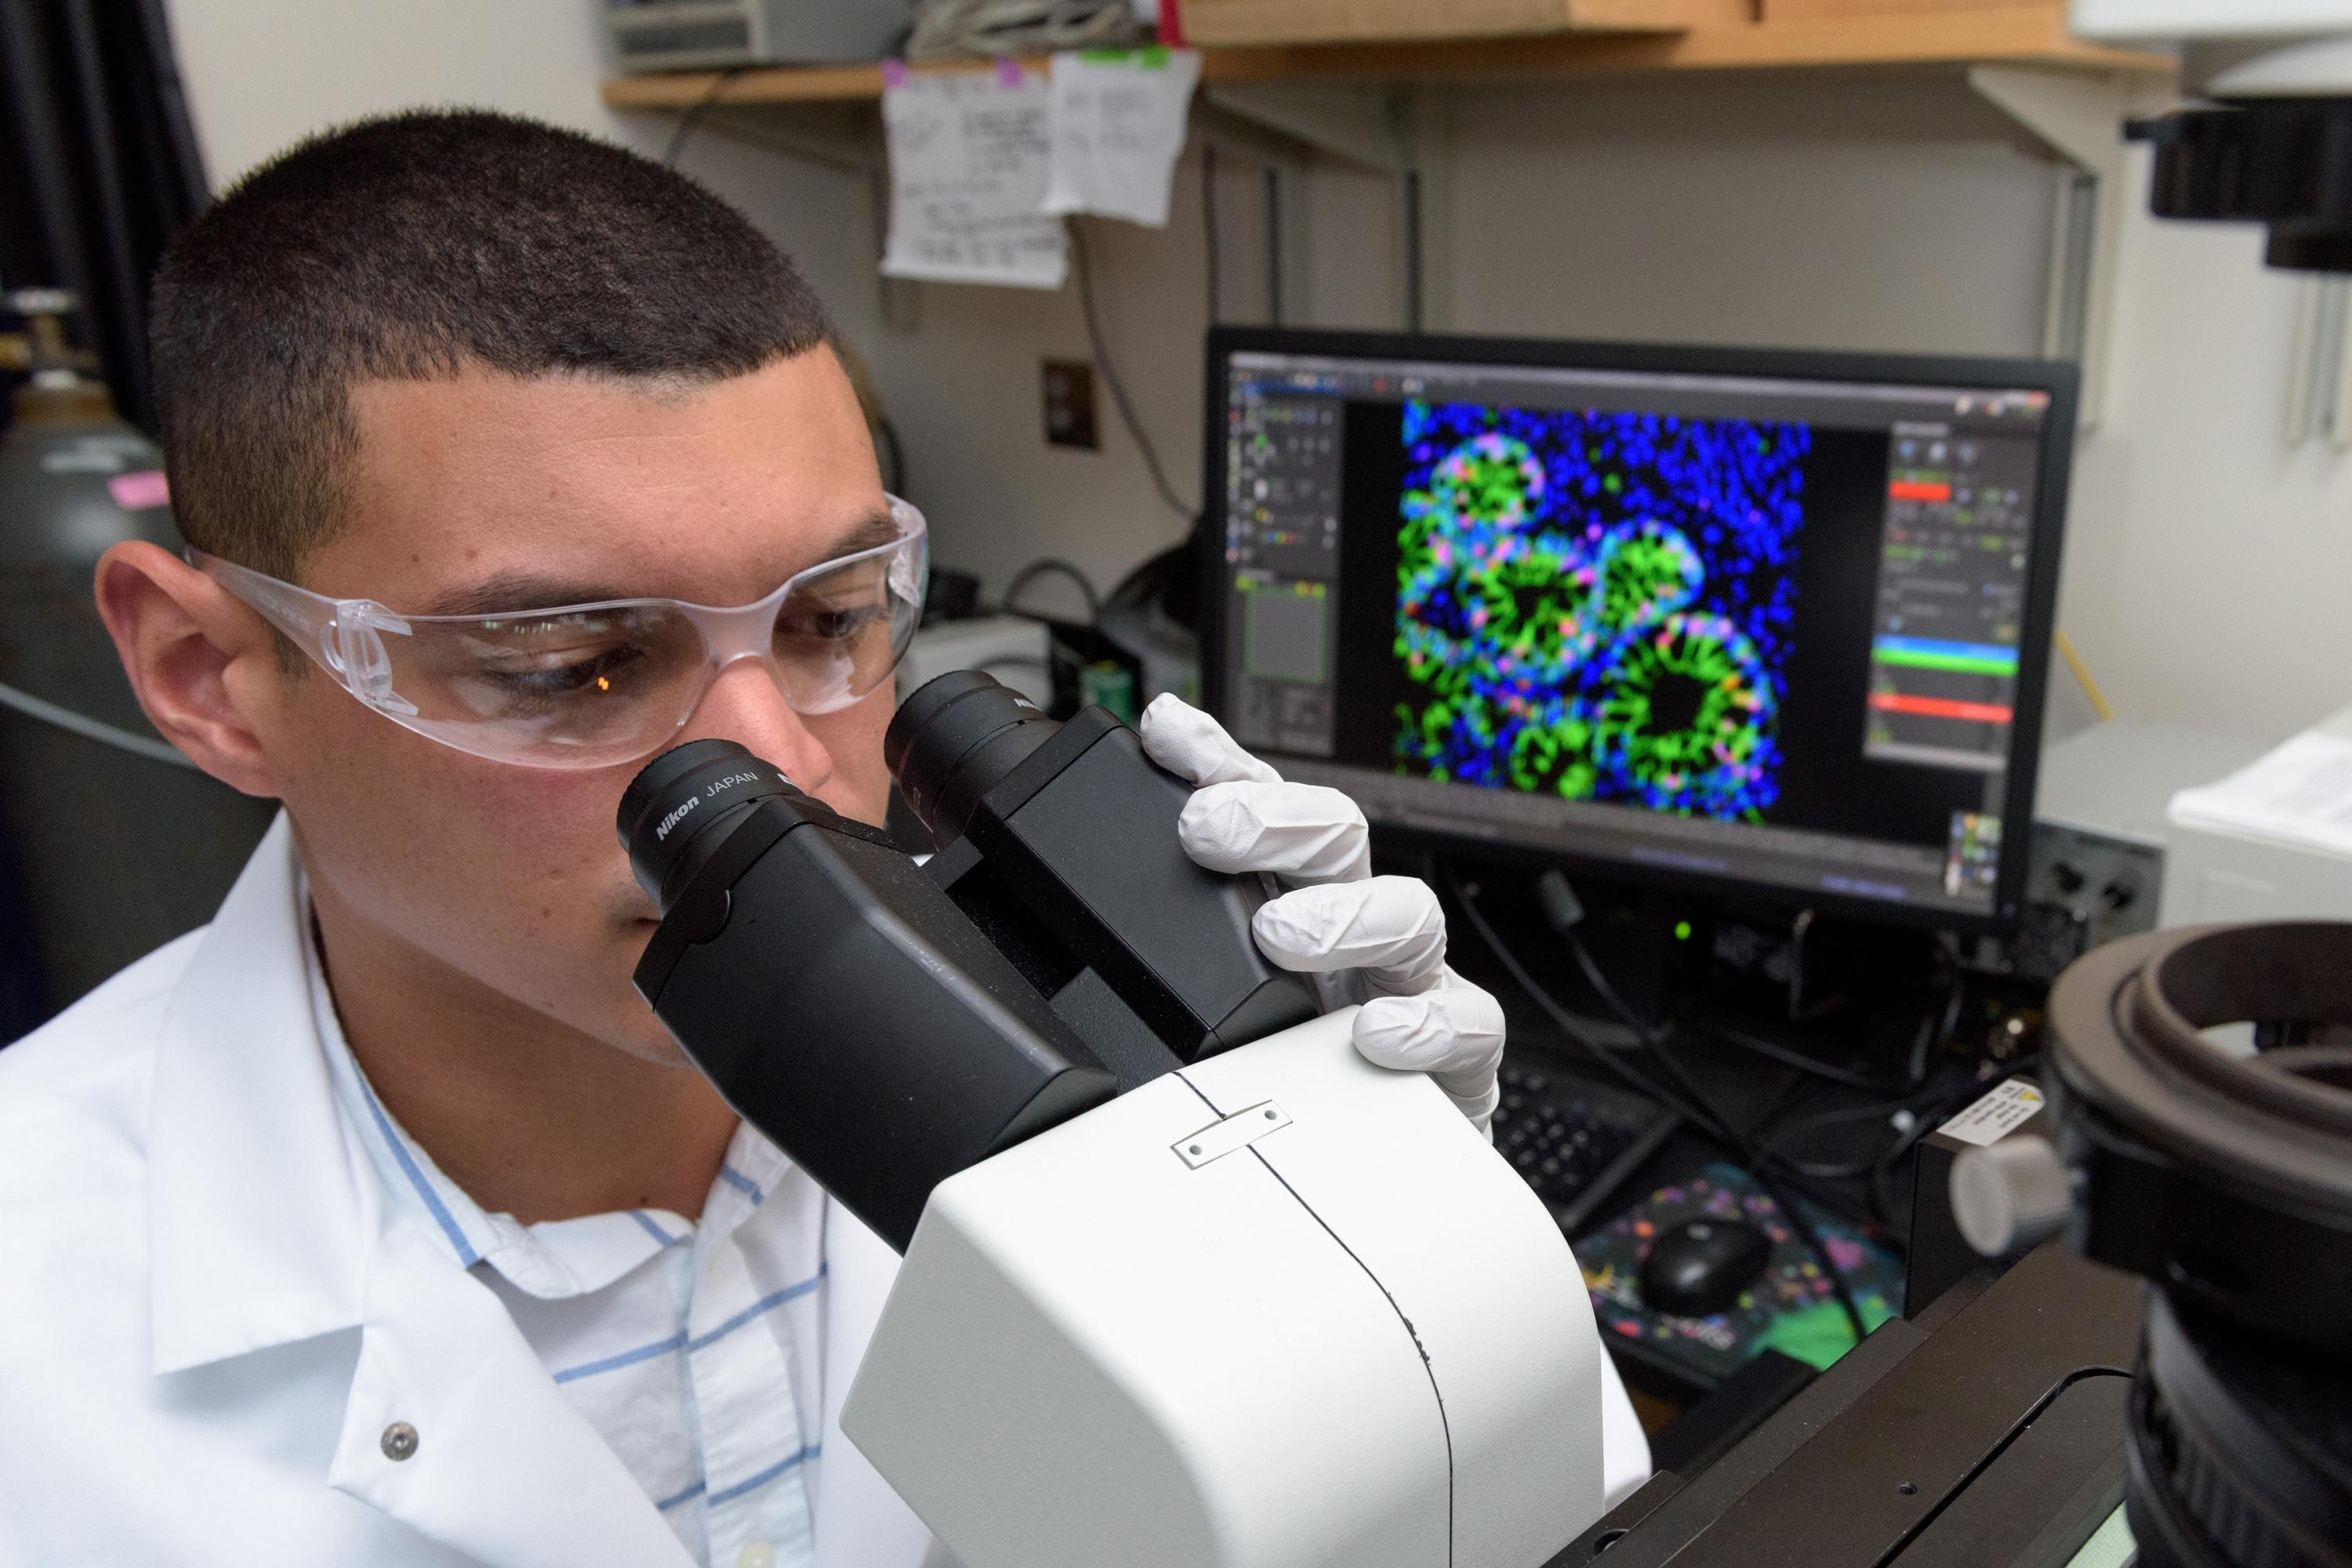 Georgia Tech Graduate Research Assistant Ricardo Cruz-Acuña examines differentiating human intestinal organoids (HIOs) under a microscope. The research may lead to a new technique for treating injuries caused by gastrointestinal diseases. (Credit: Rob Fel